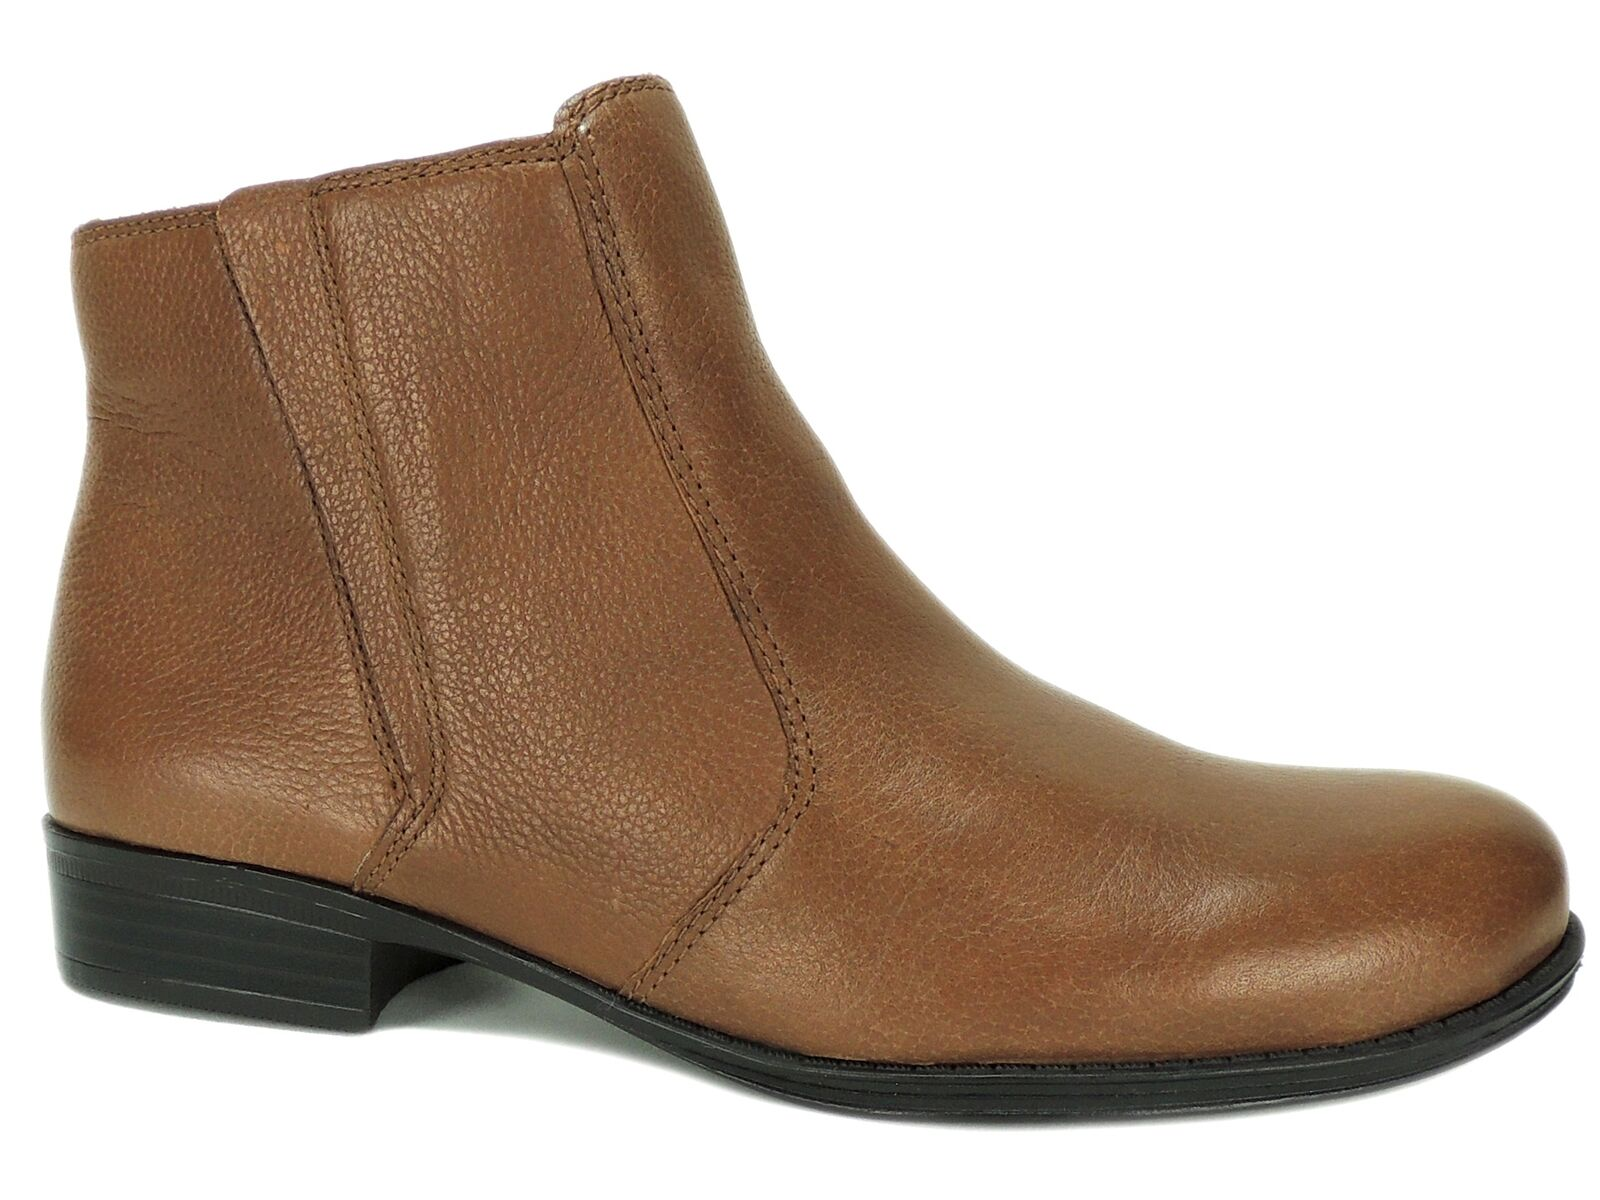 Naturalizer Women's Jump Ankle Booties Banana Bread Leather Size 5.5 M